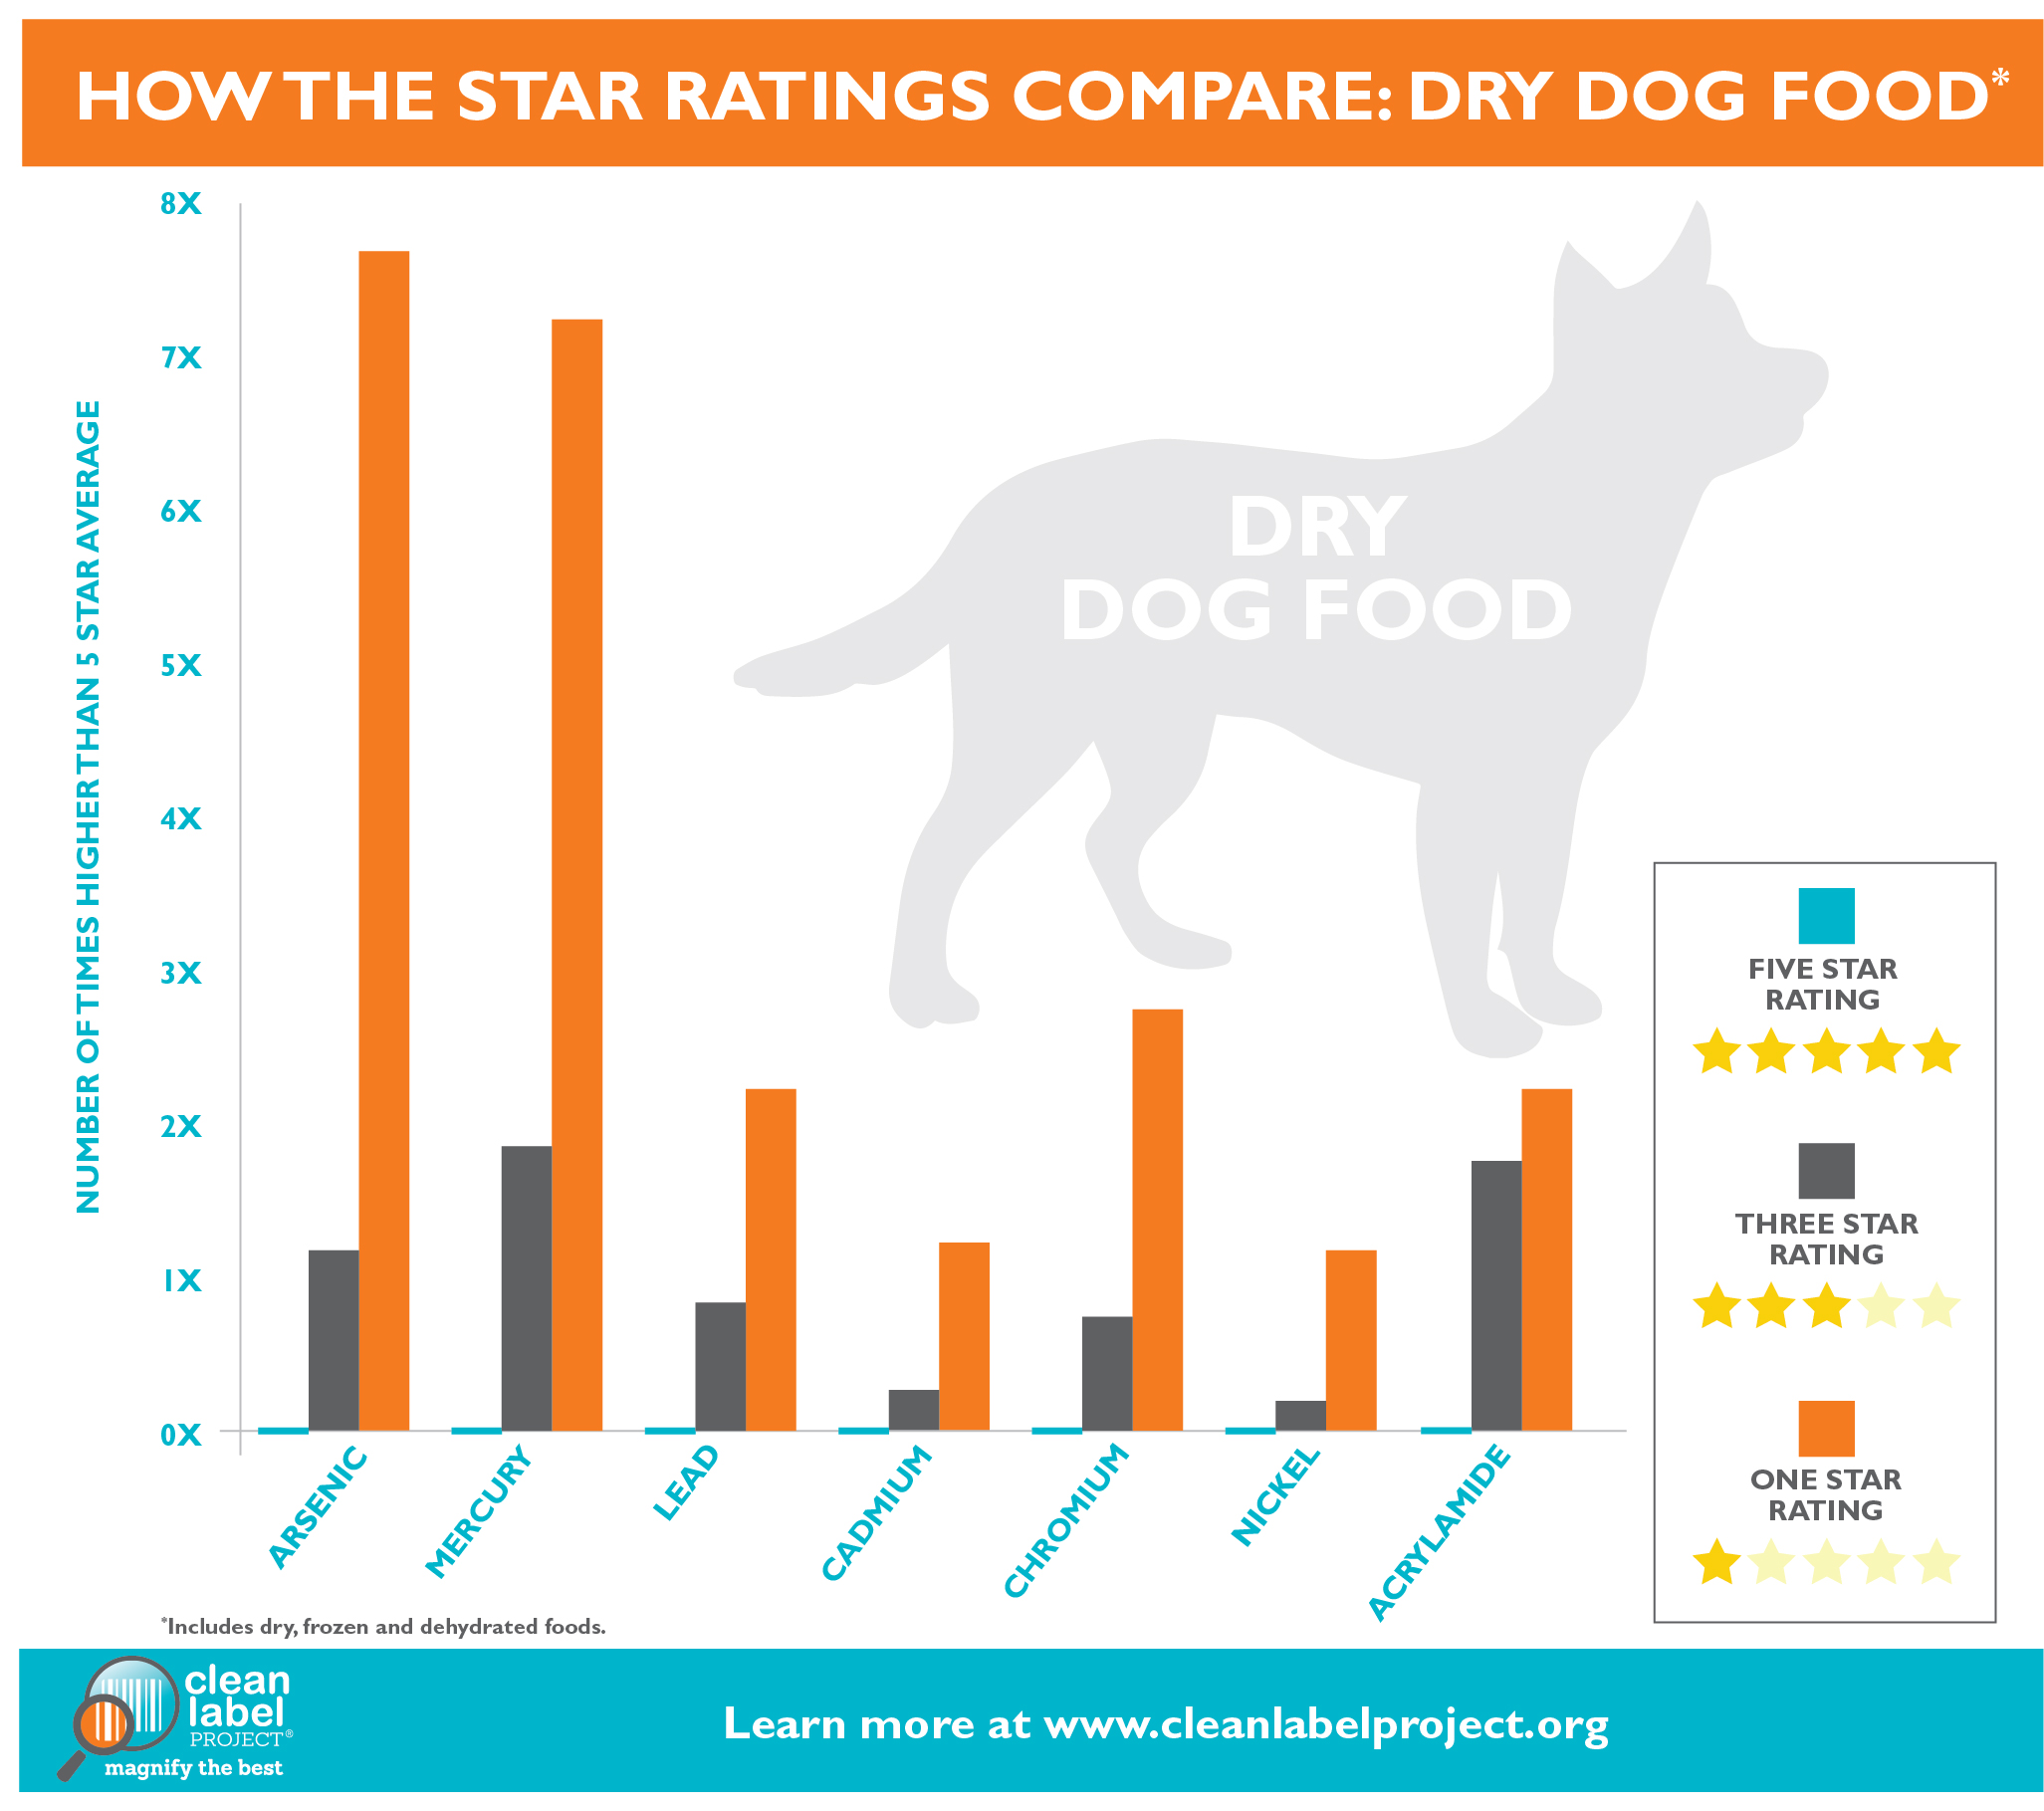 Eagle Pack Dog Food Ratings